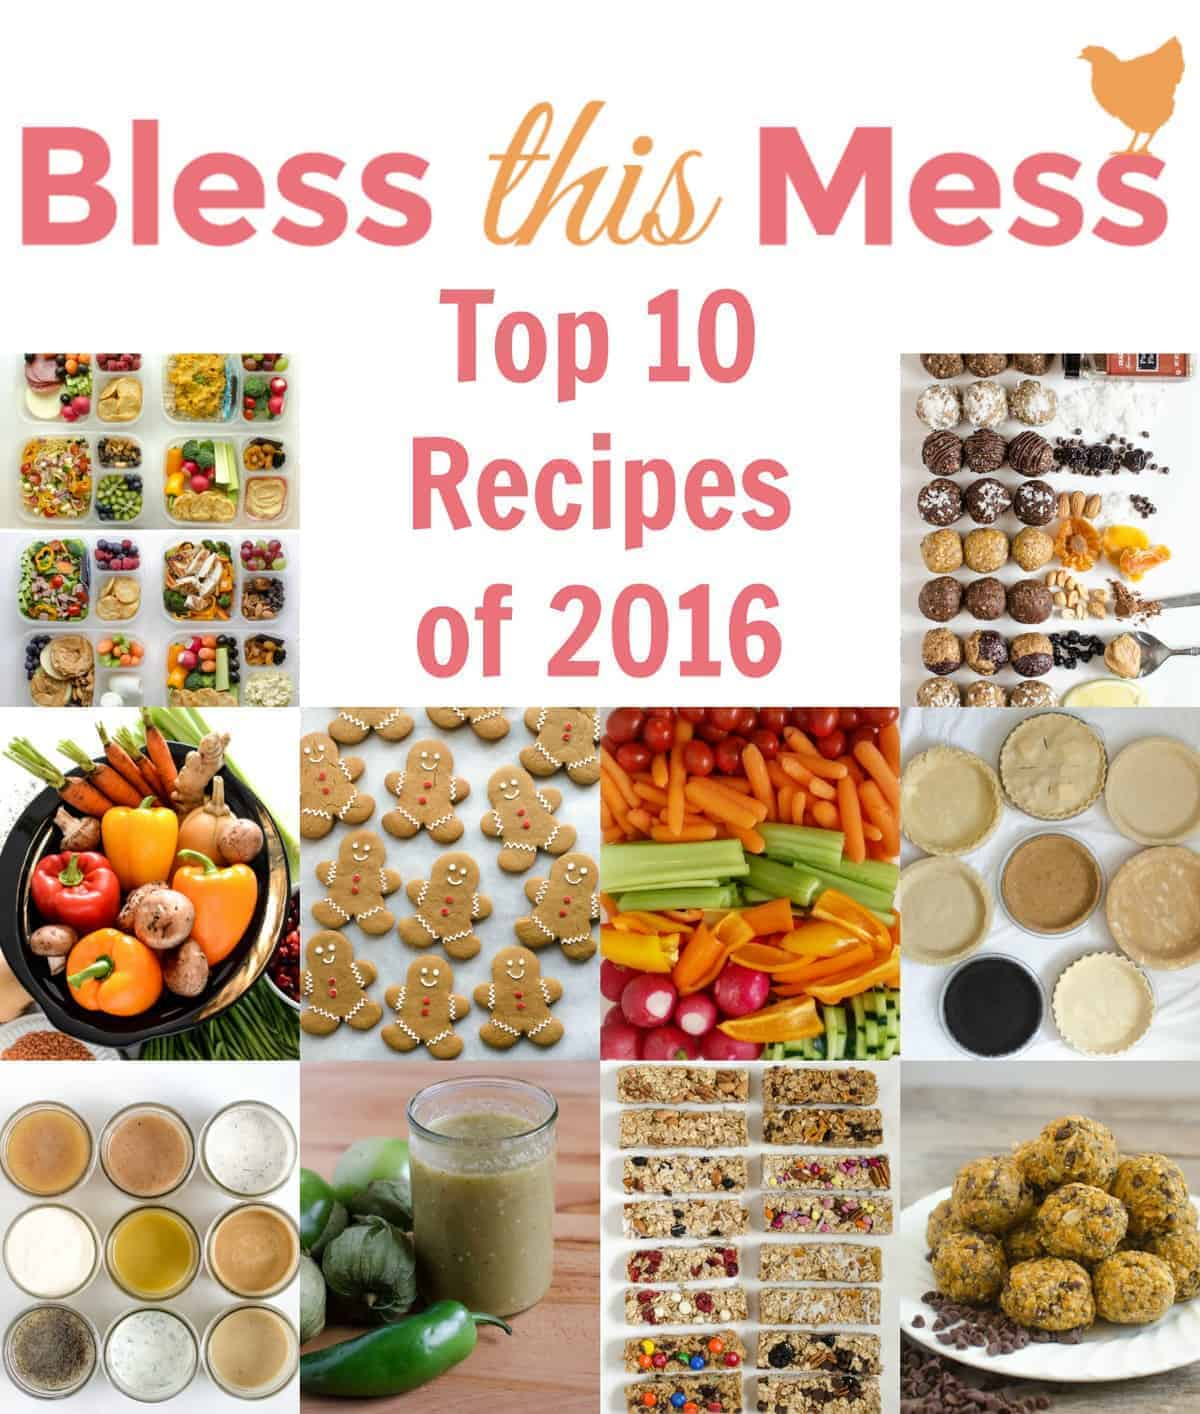 The top 10 posts from Bless This Mess in 2016, and where we're headed in the future. Spoiler alert: next year is going to be all about food!